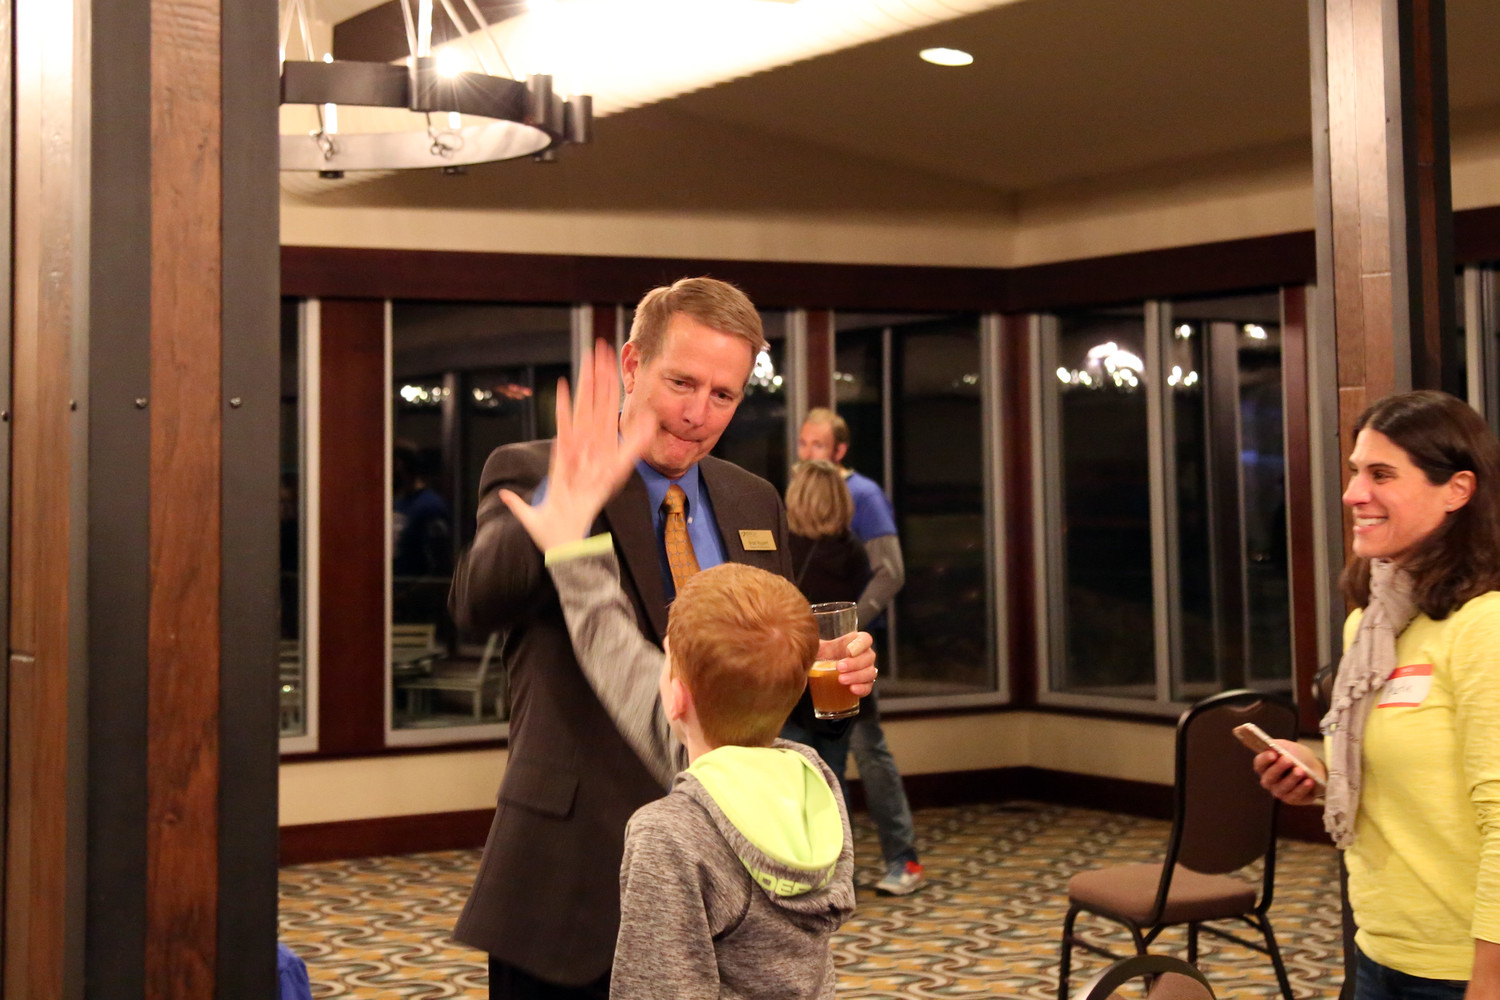 Jeffco Schools incumbent Brad Rupert gives a high five as his leading number come in during election night.